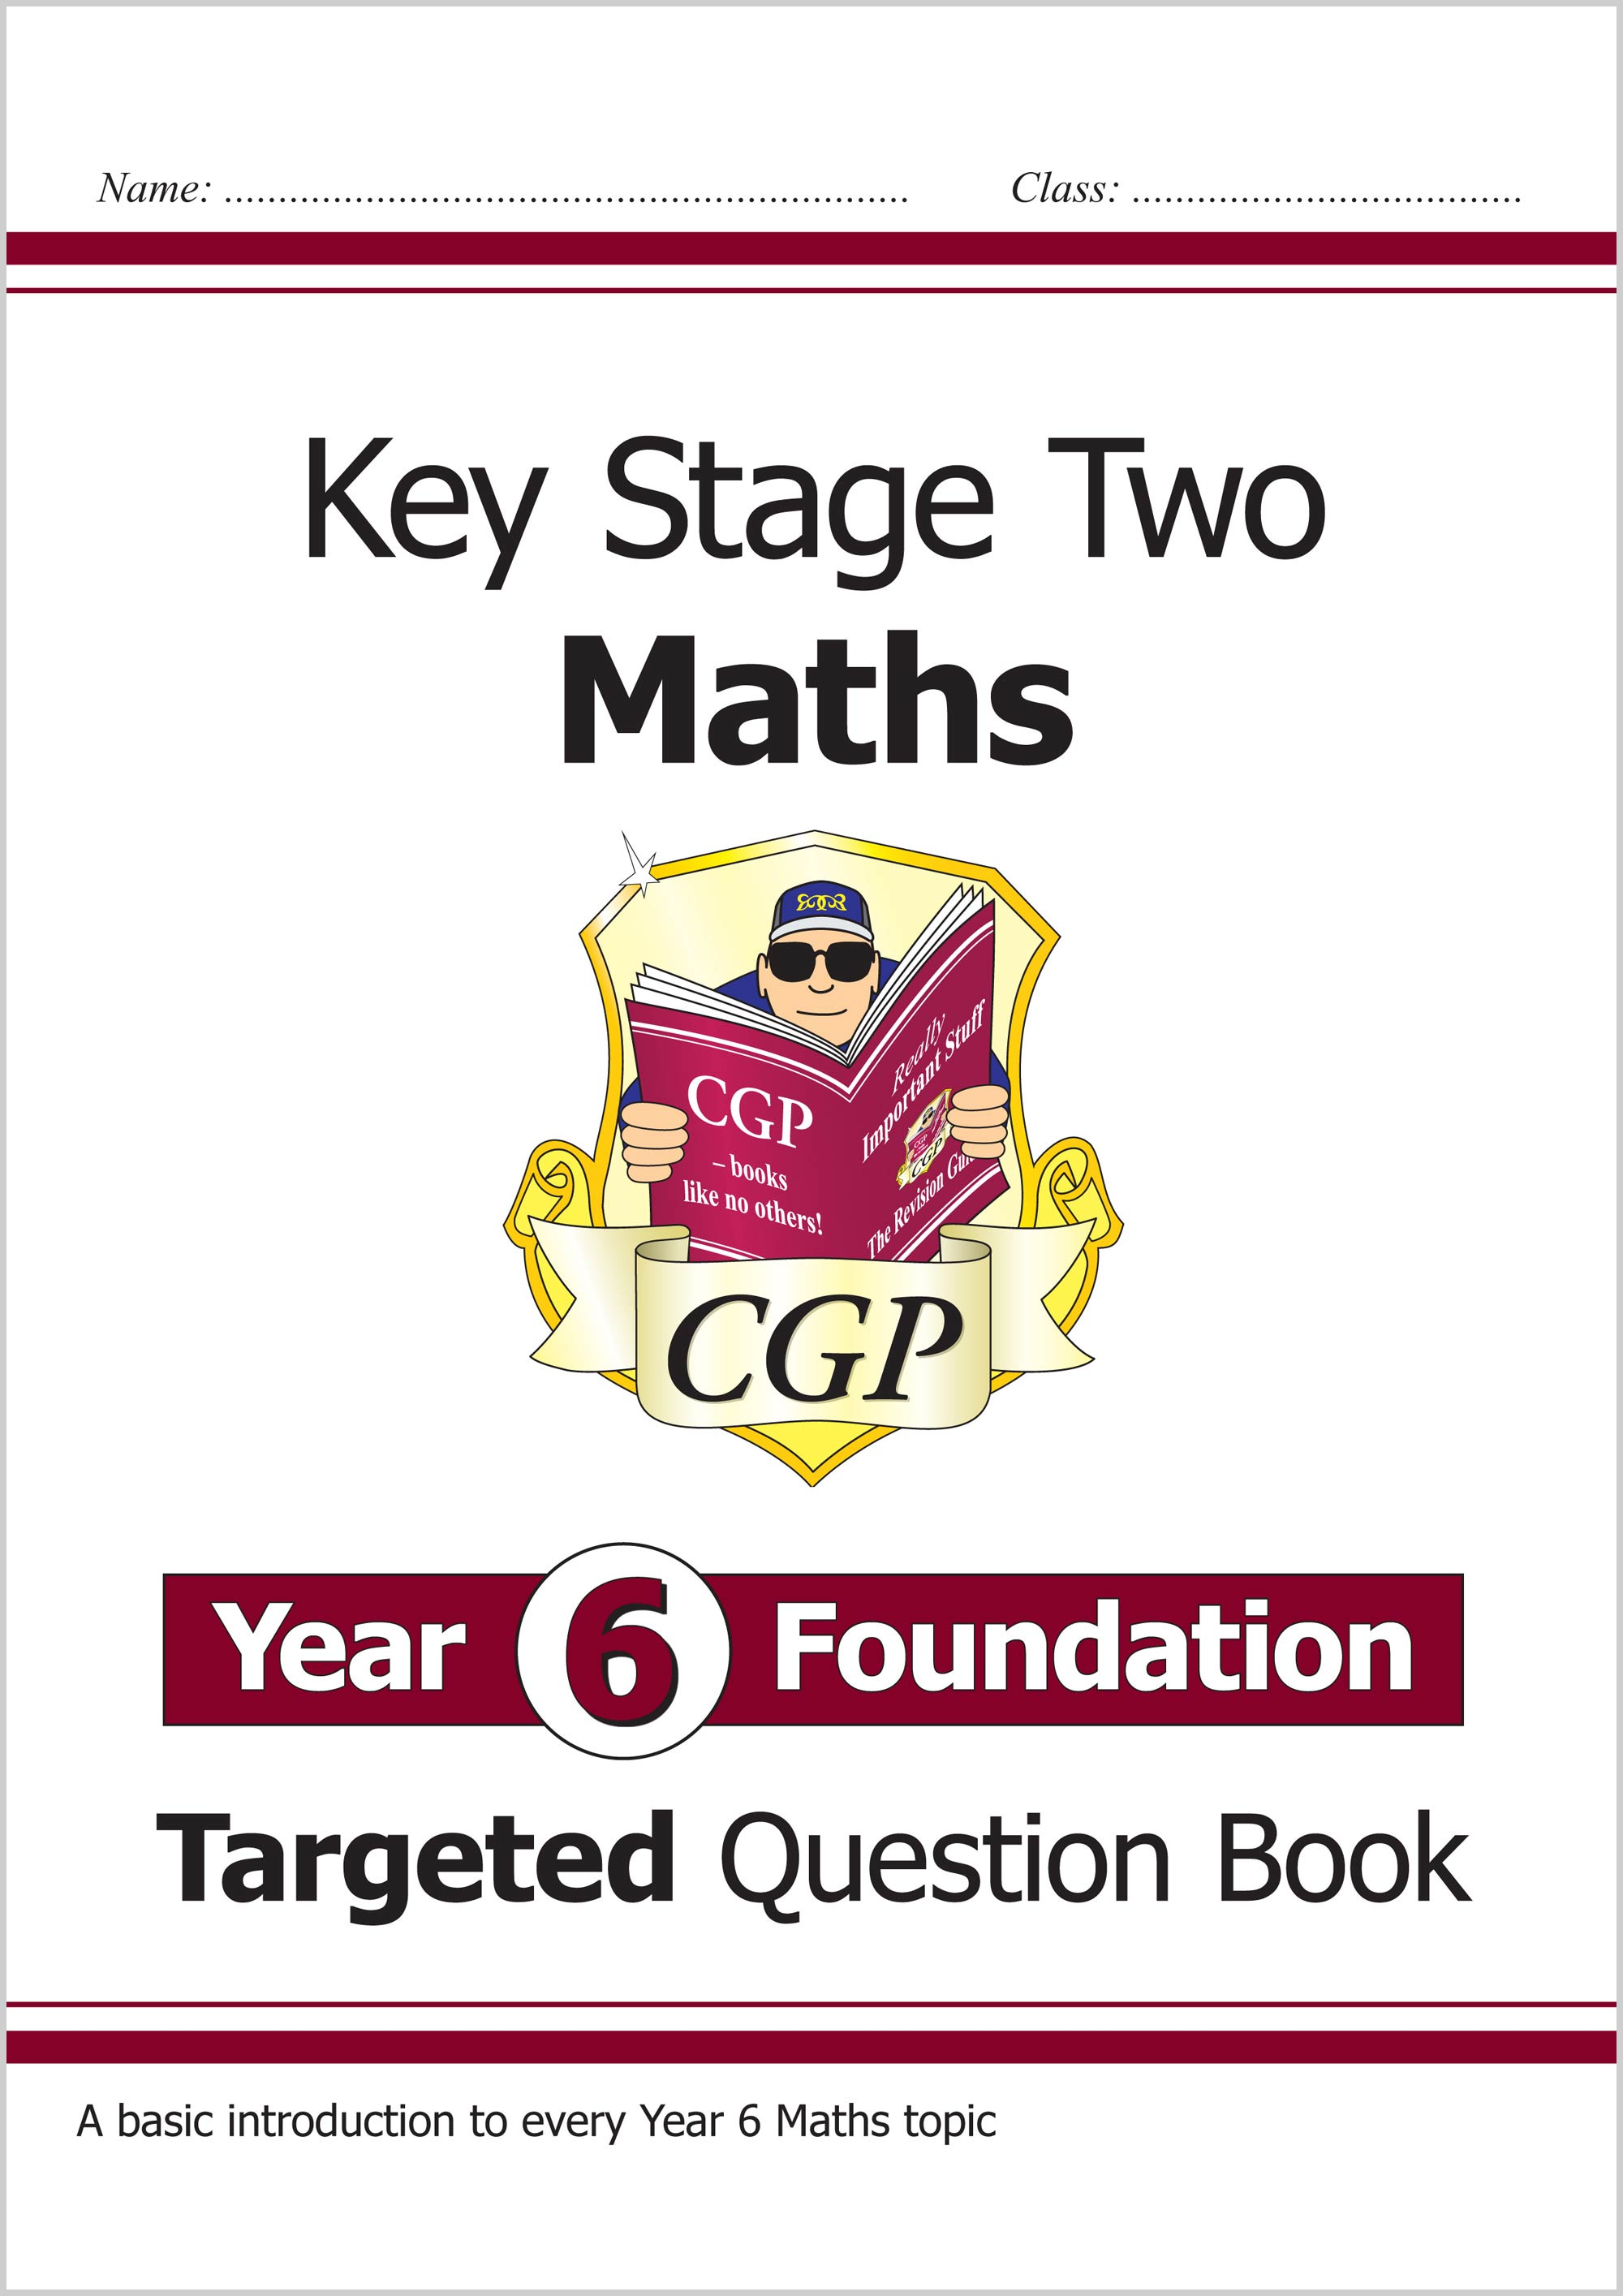 New Ks2 Maths Targeted Question Book Year 6 Foundation